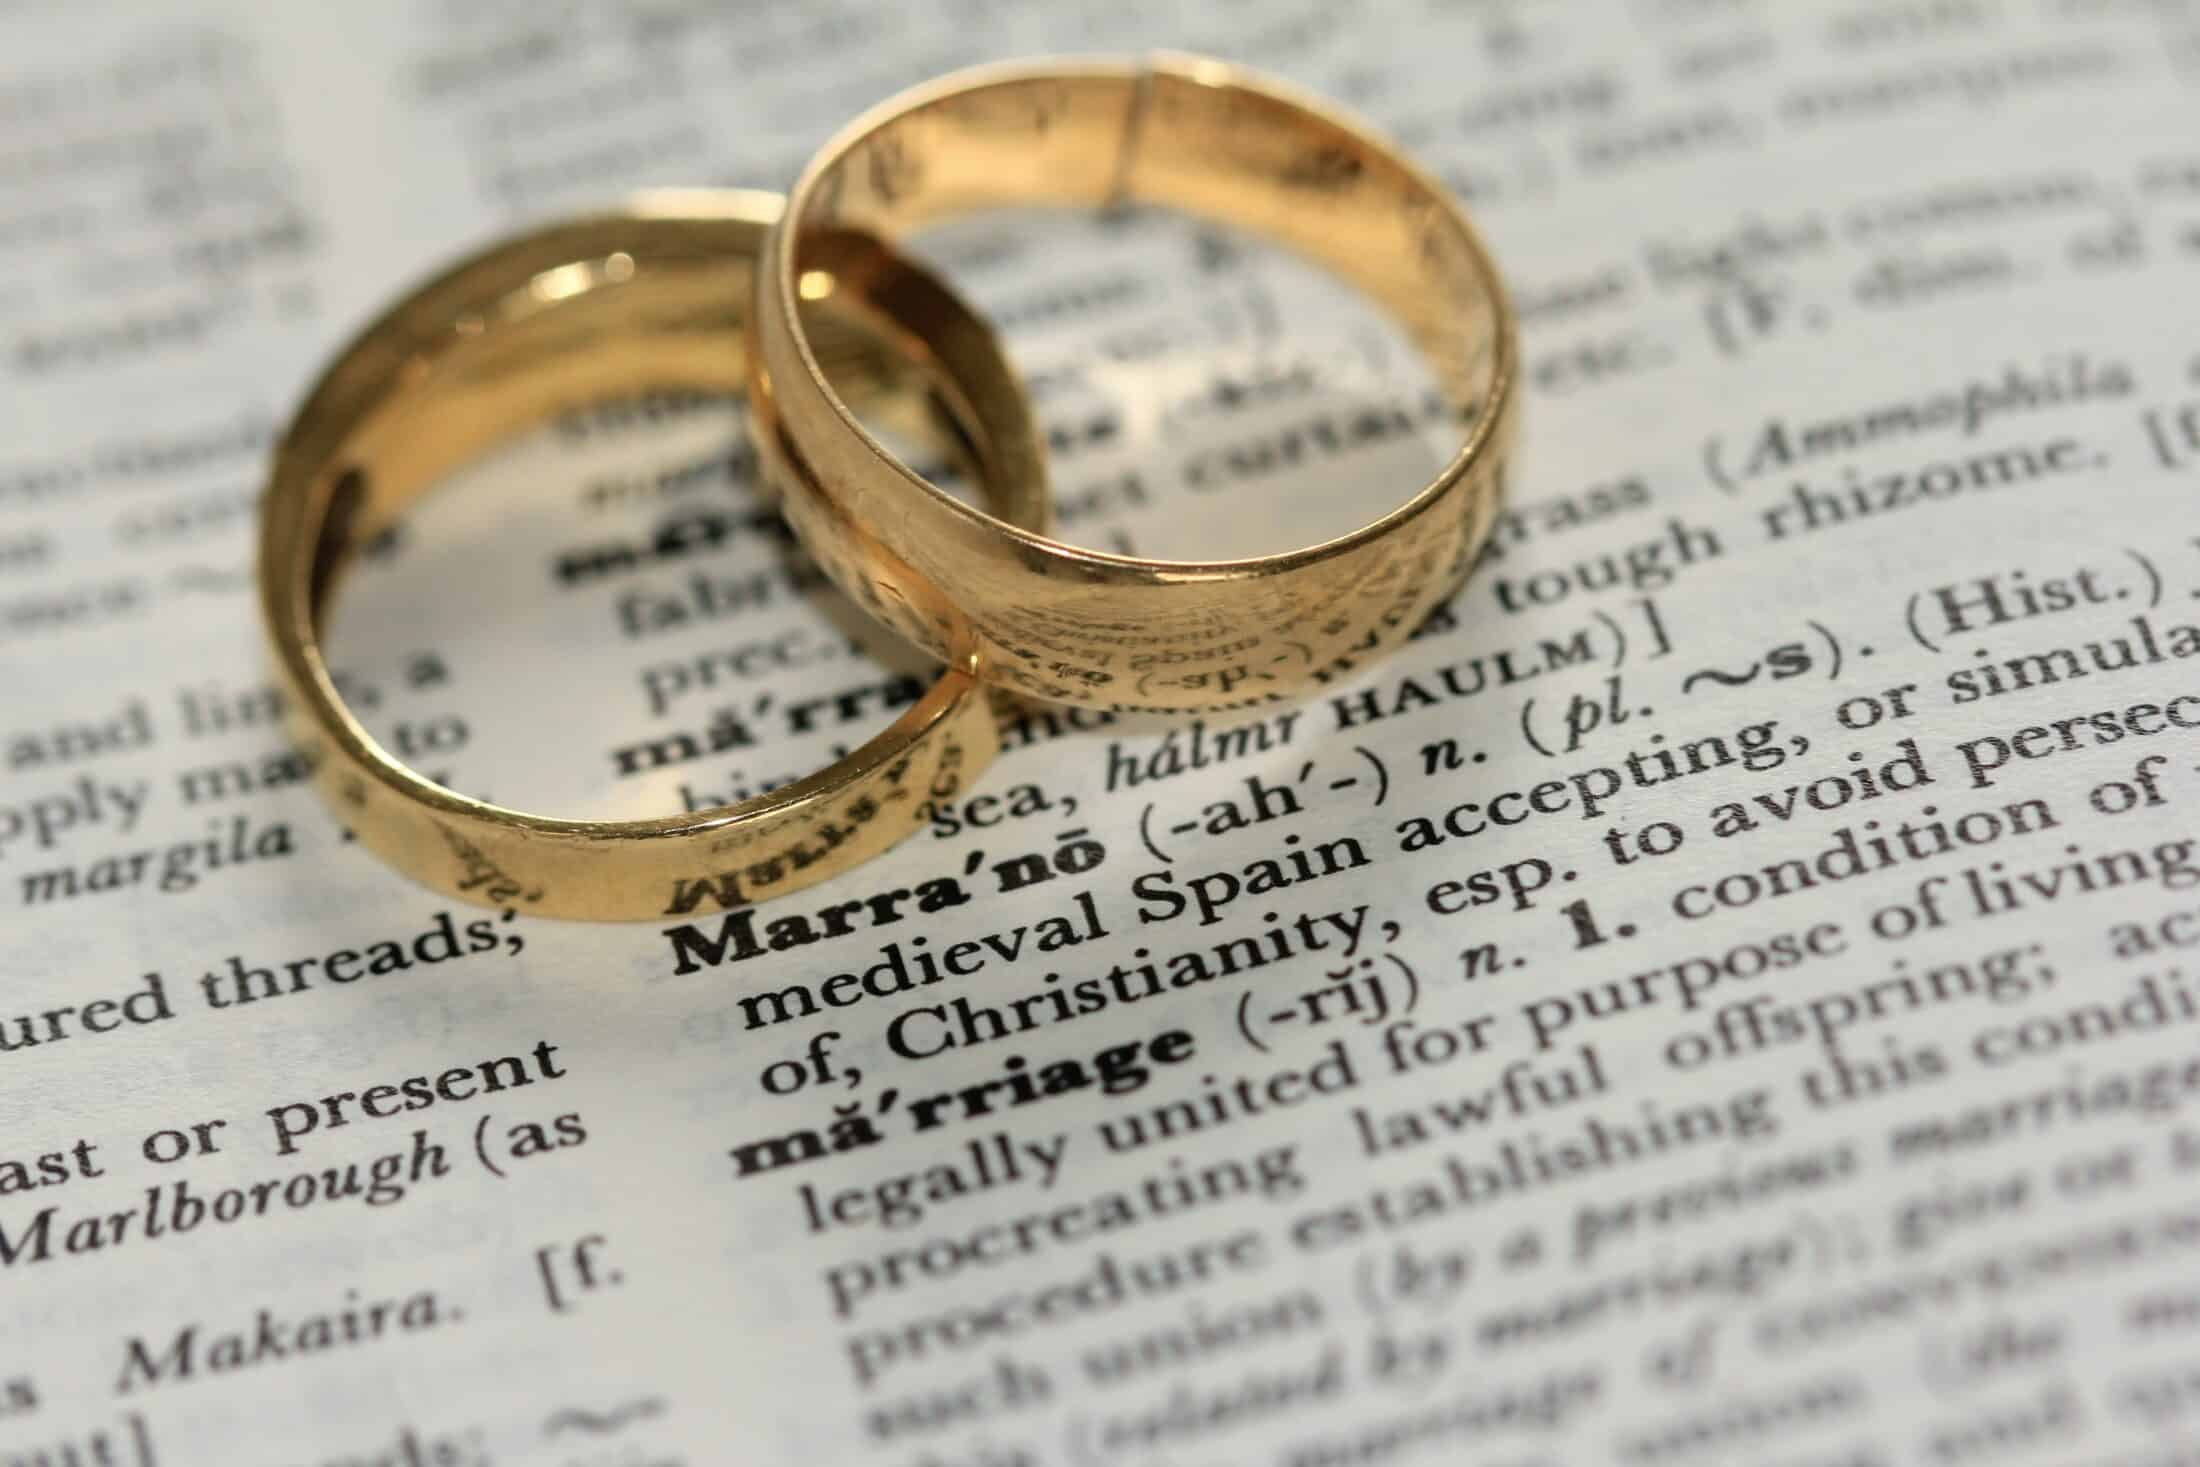 pre and post nuptial cohabitation agreements blog